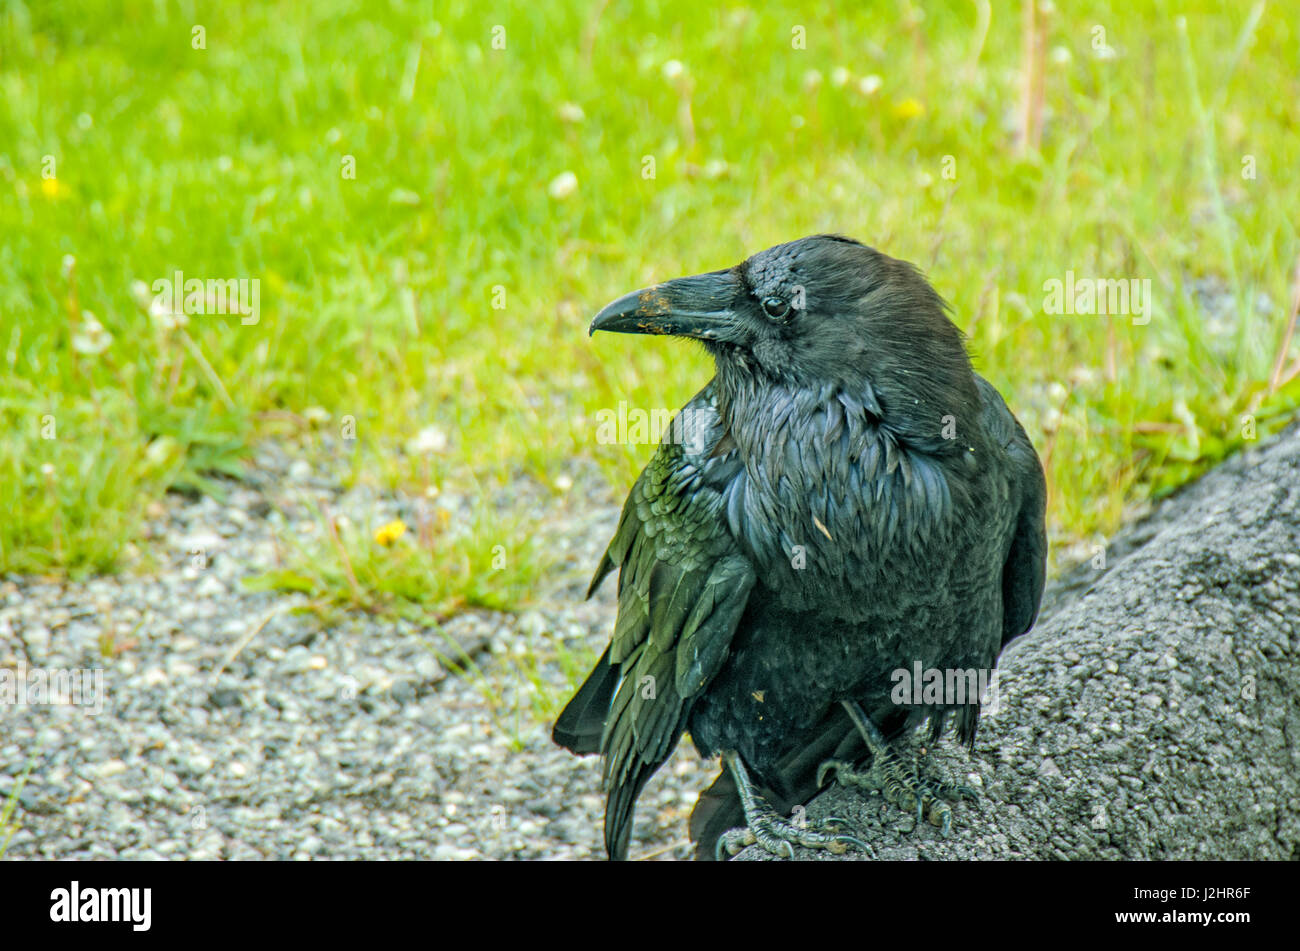 Black raven by the roadside in the Lamar Valley, Yellowstone National Park. - Stock Image